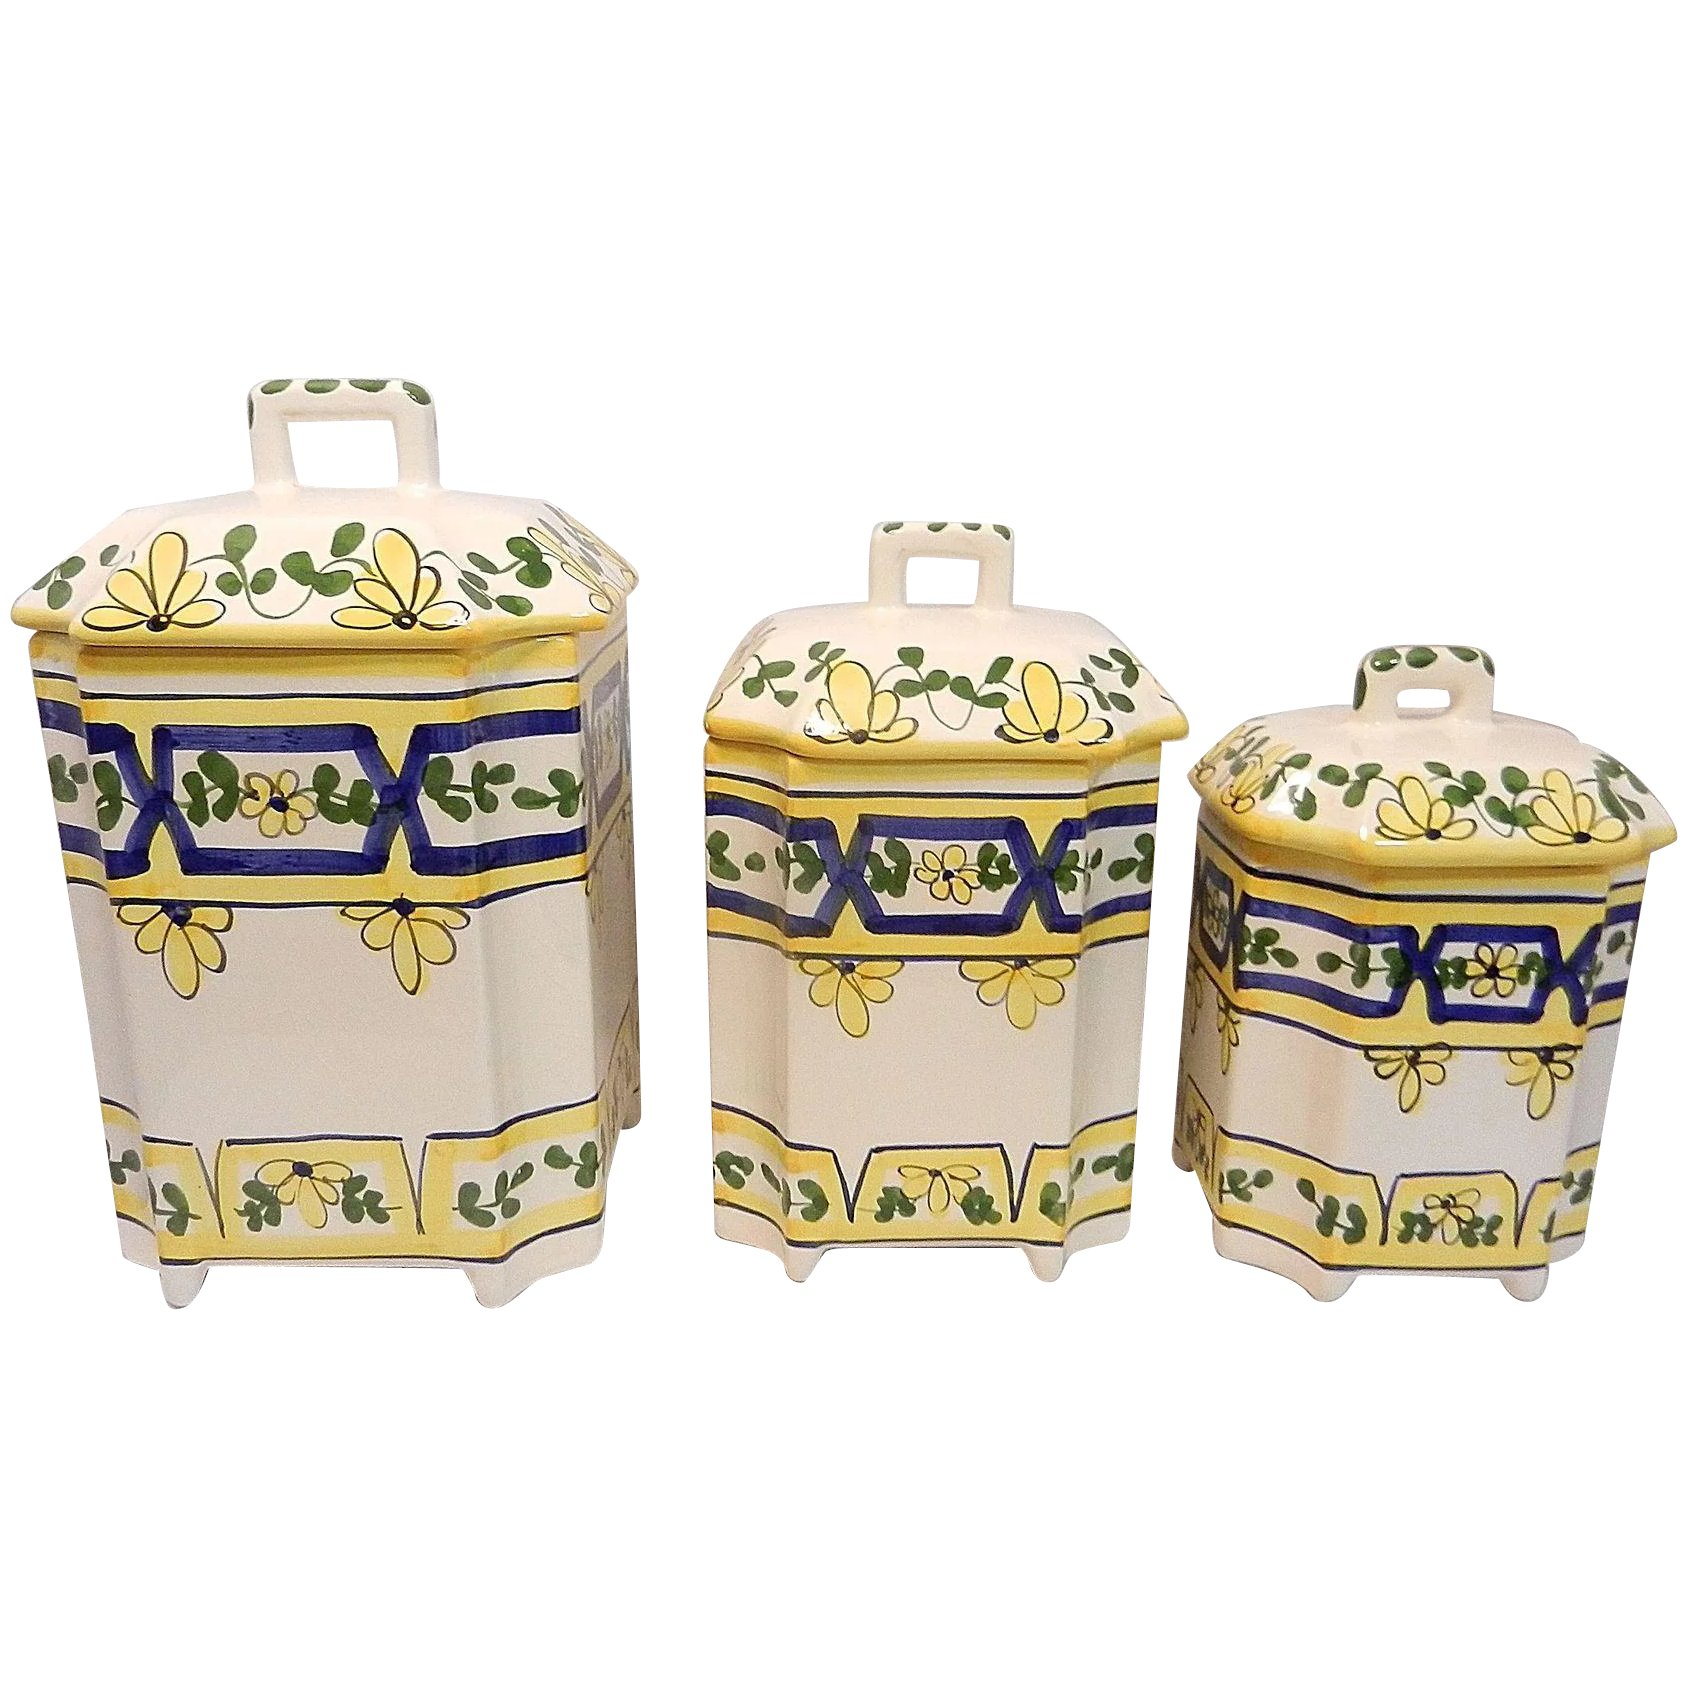 Casa Stone By Casafina vintage set of 3 casafina canisters hand painted portugal yellow blue floral